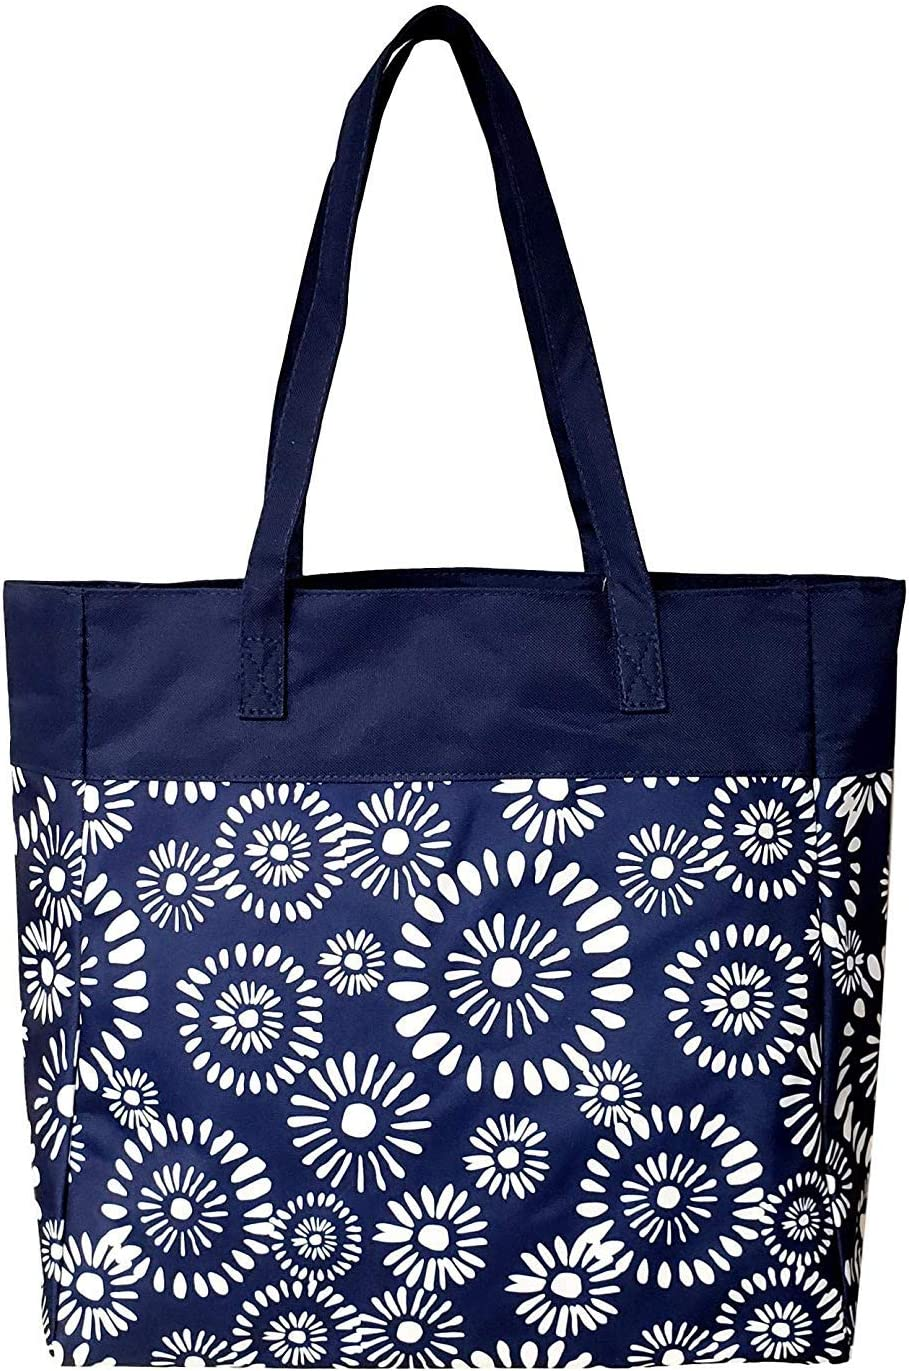 High Fashion Print Tote Bag Personalization Available Blank - Riley Navy